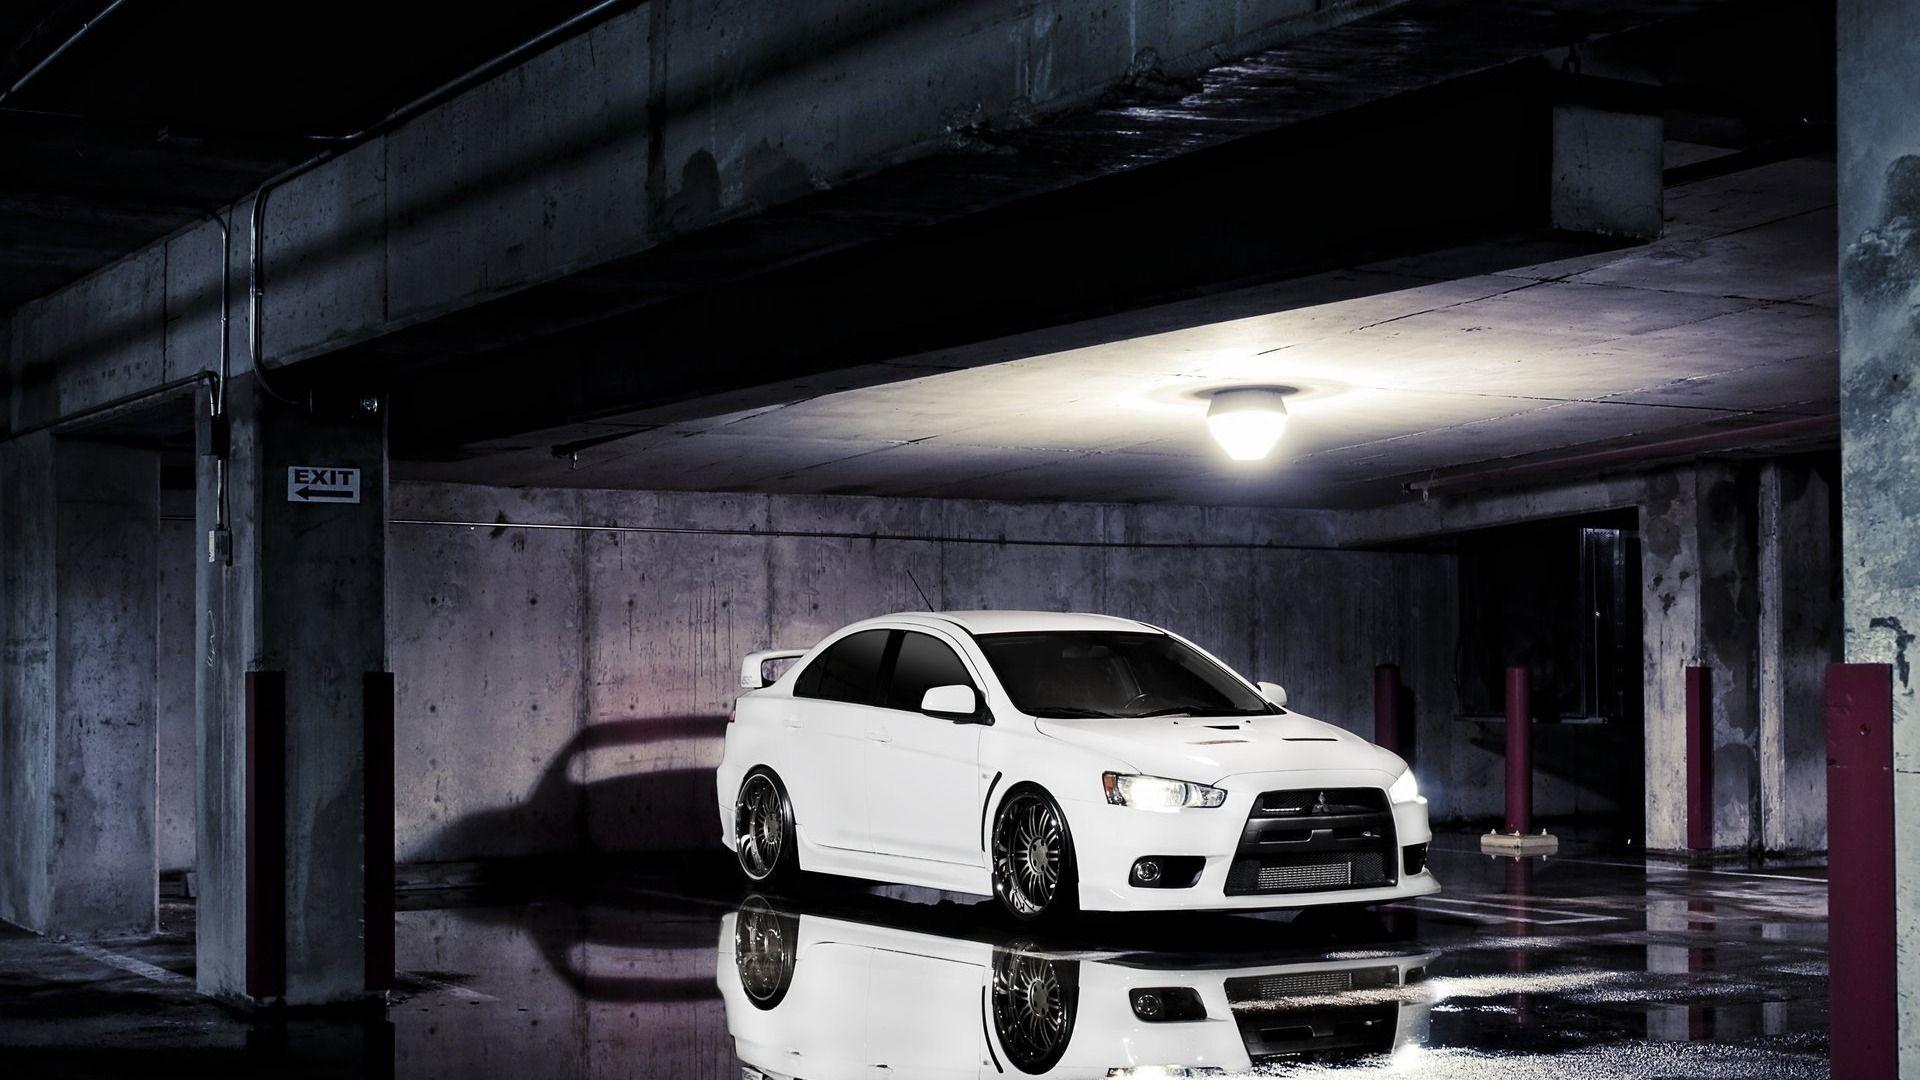 Mitsubishi Evo 2014 HD Wallpaper, Backgrounds Image